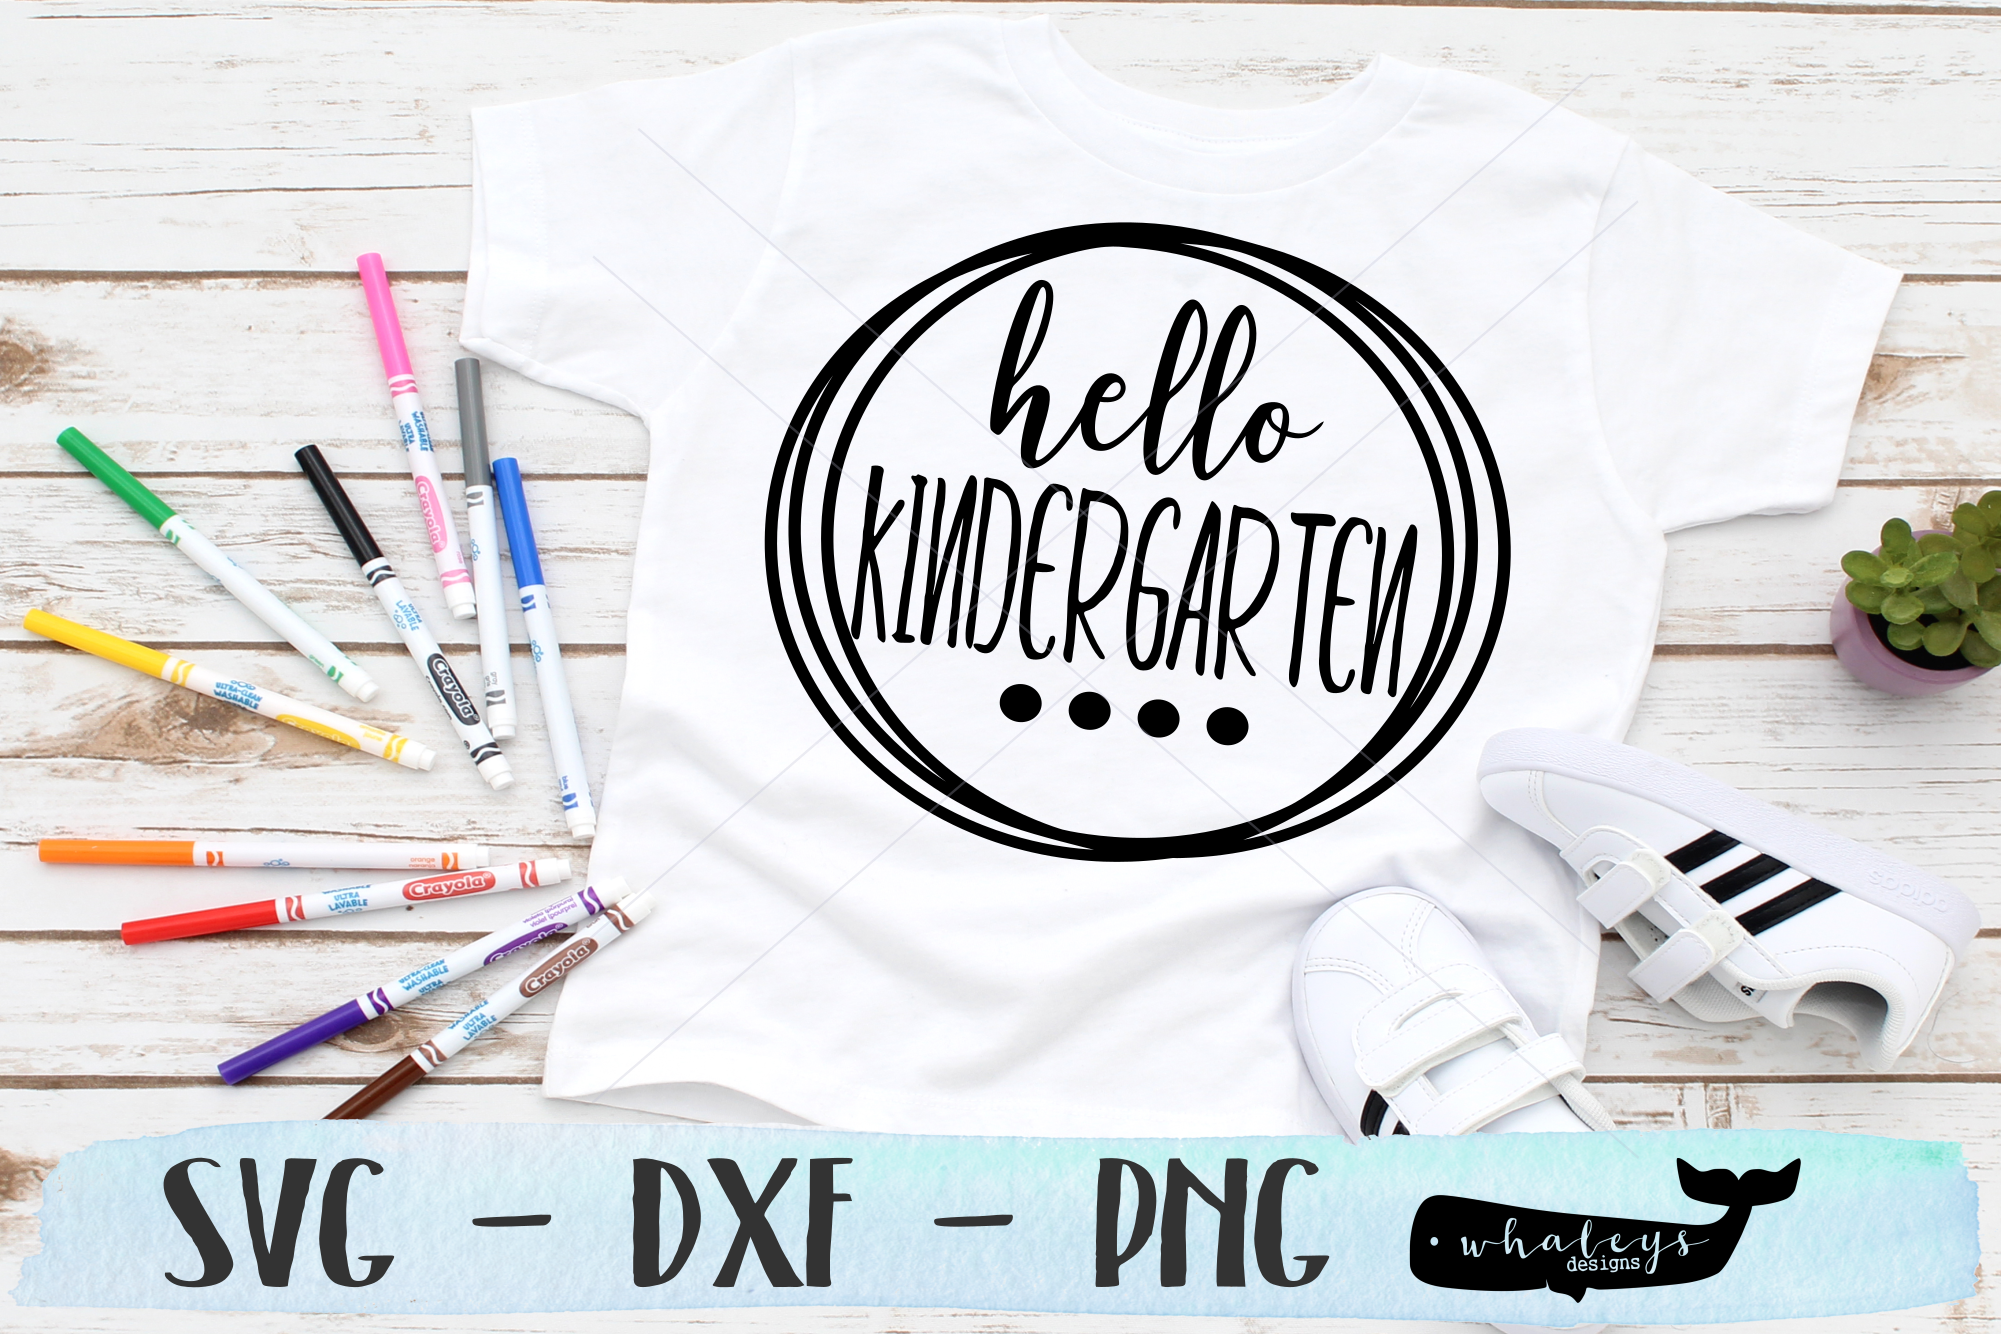 Download Free Hello Kindergarten School Graphic By Whaleysdesigns Creative for Cricut Explore, Silhouette and other cutting machines.